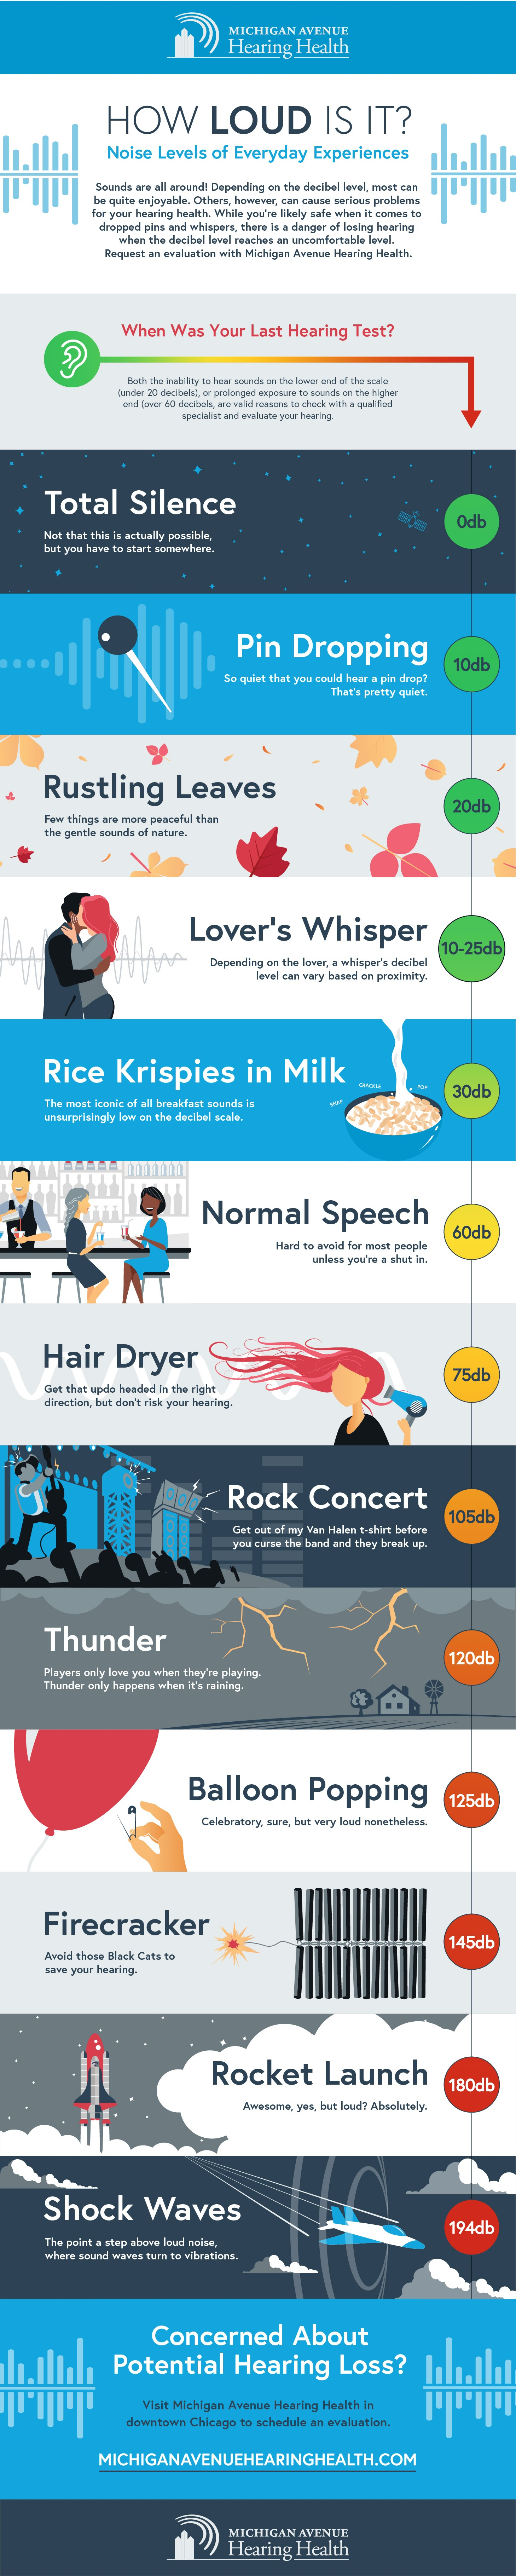 How Loud Is It #infographic